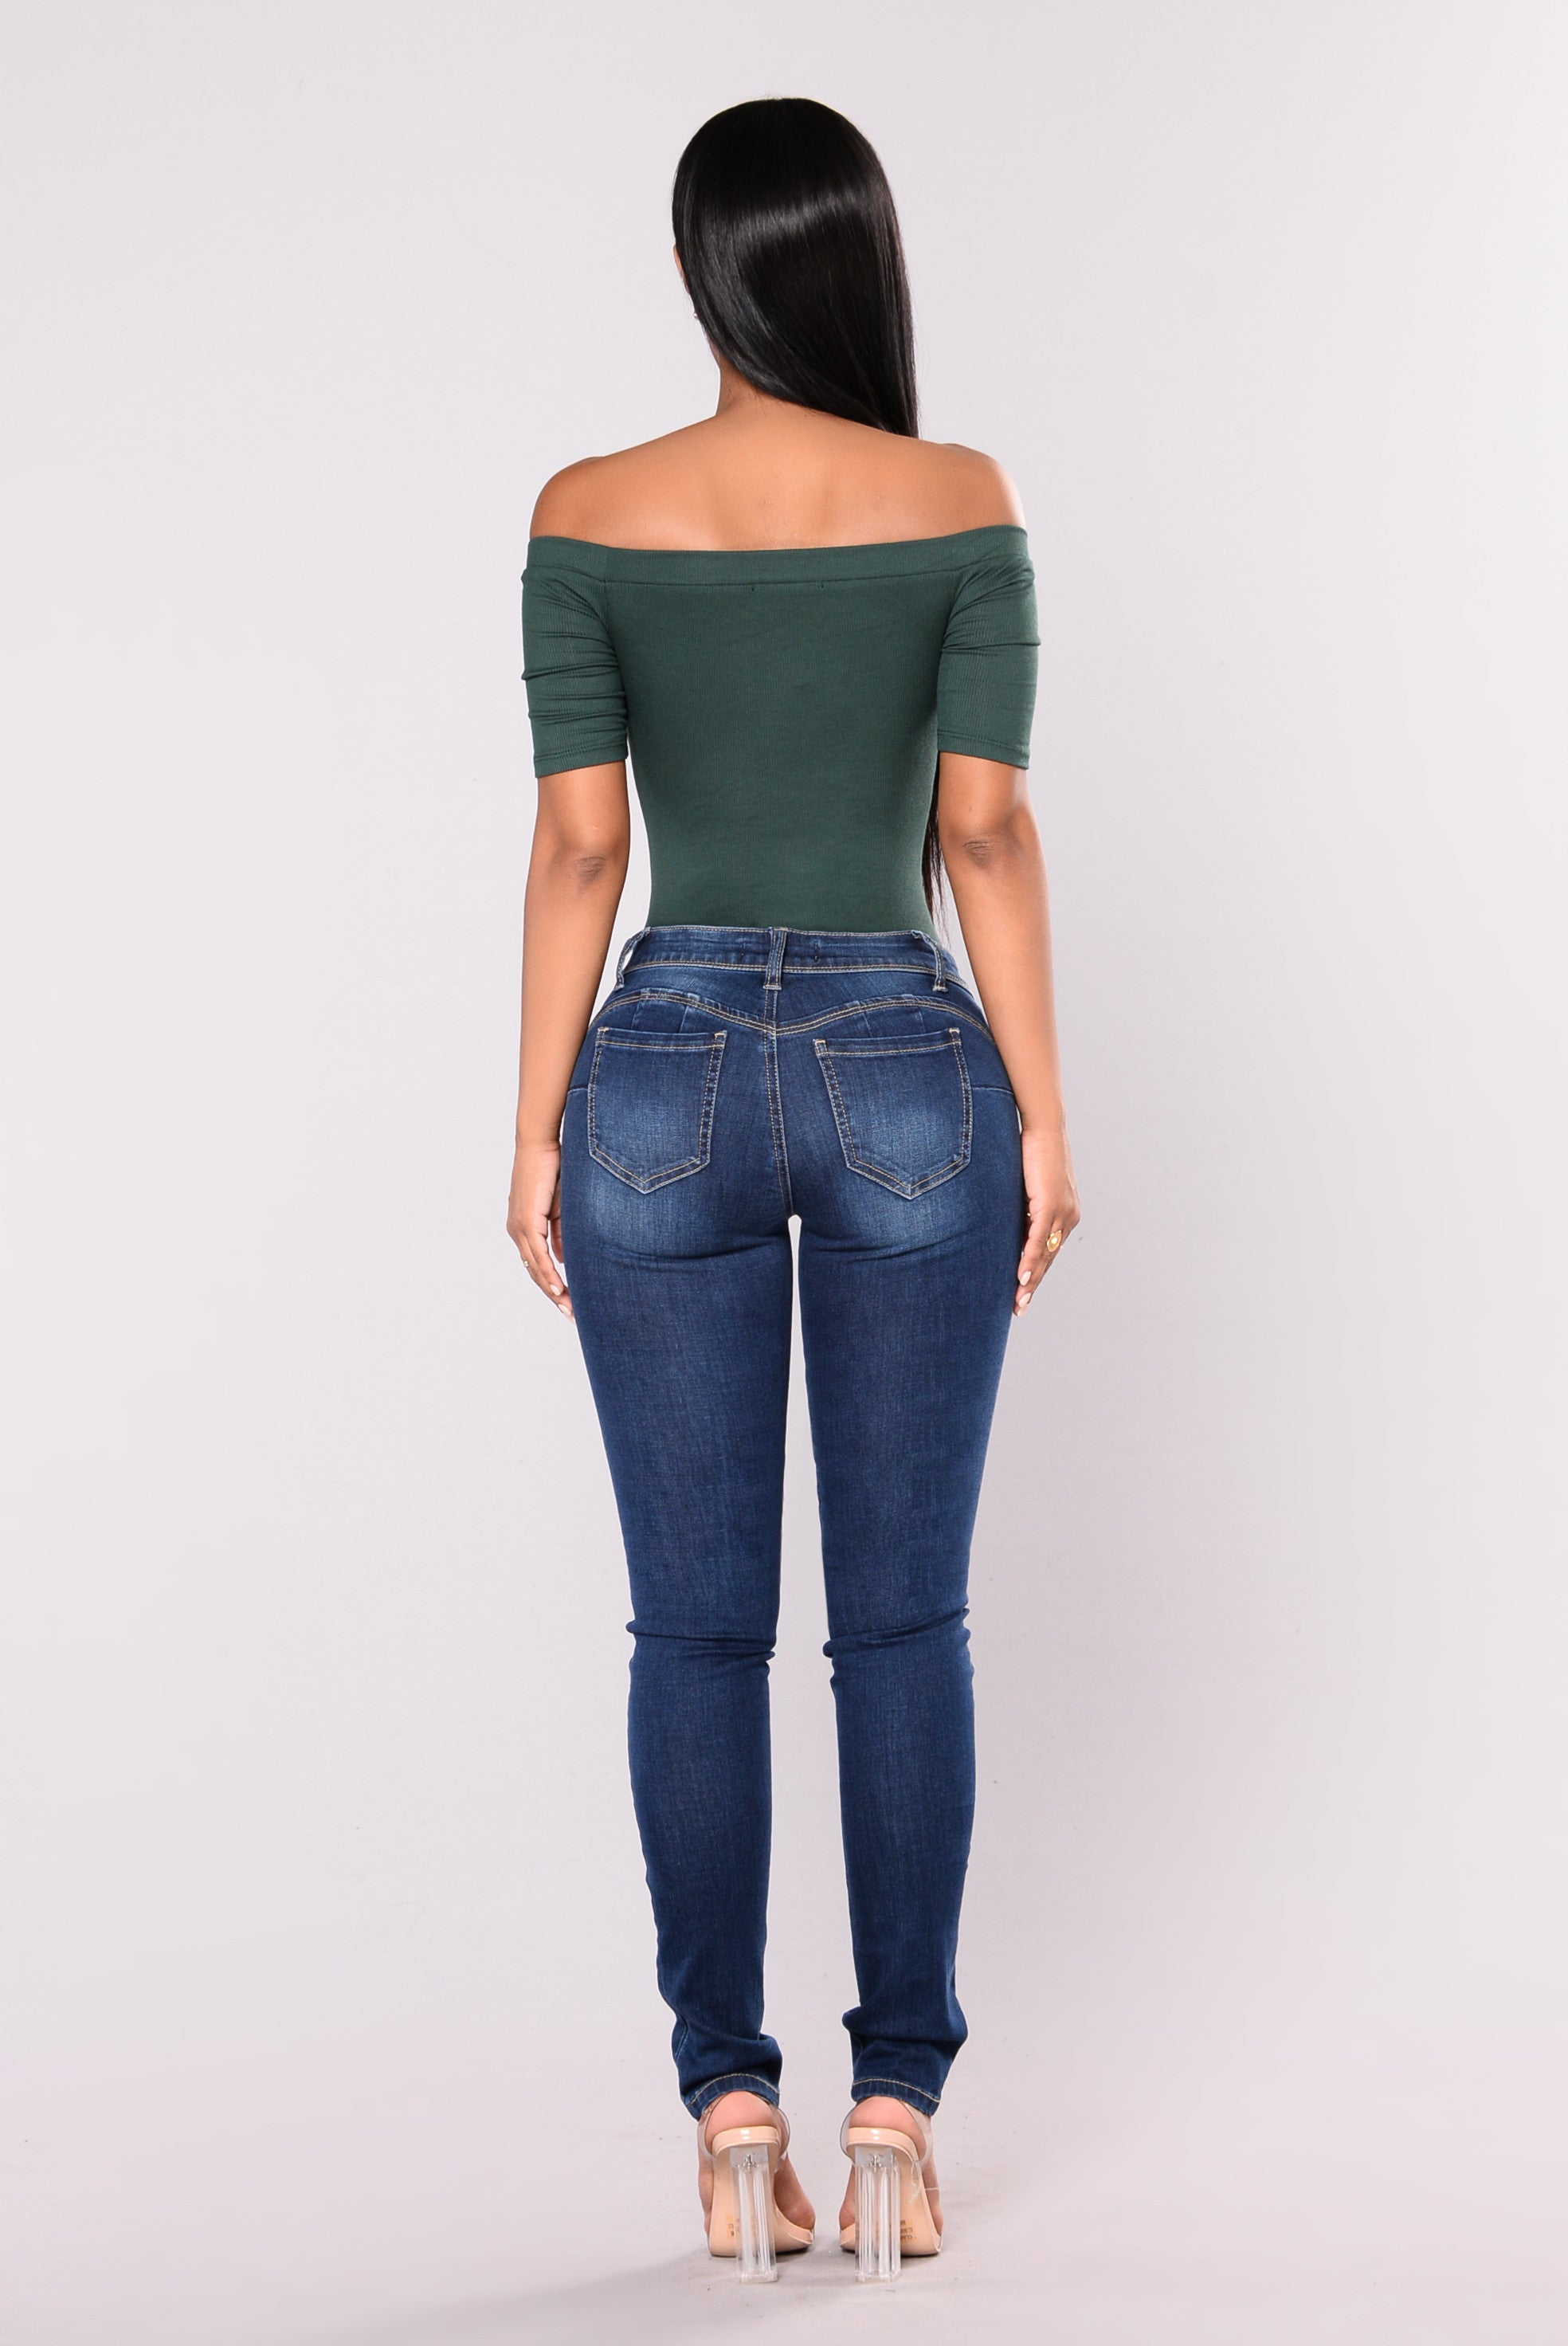 Make It Bounce Booty Shaping Jeans Medium Blue